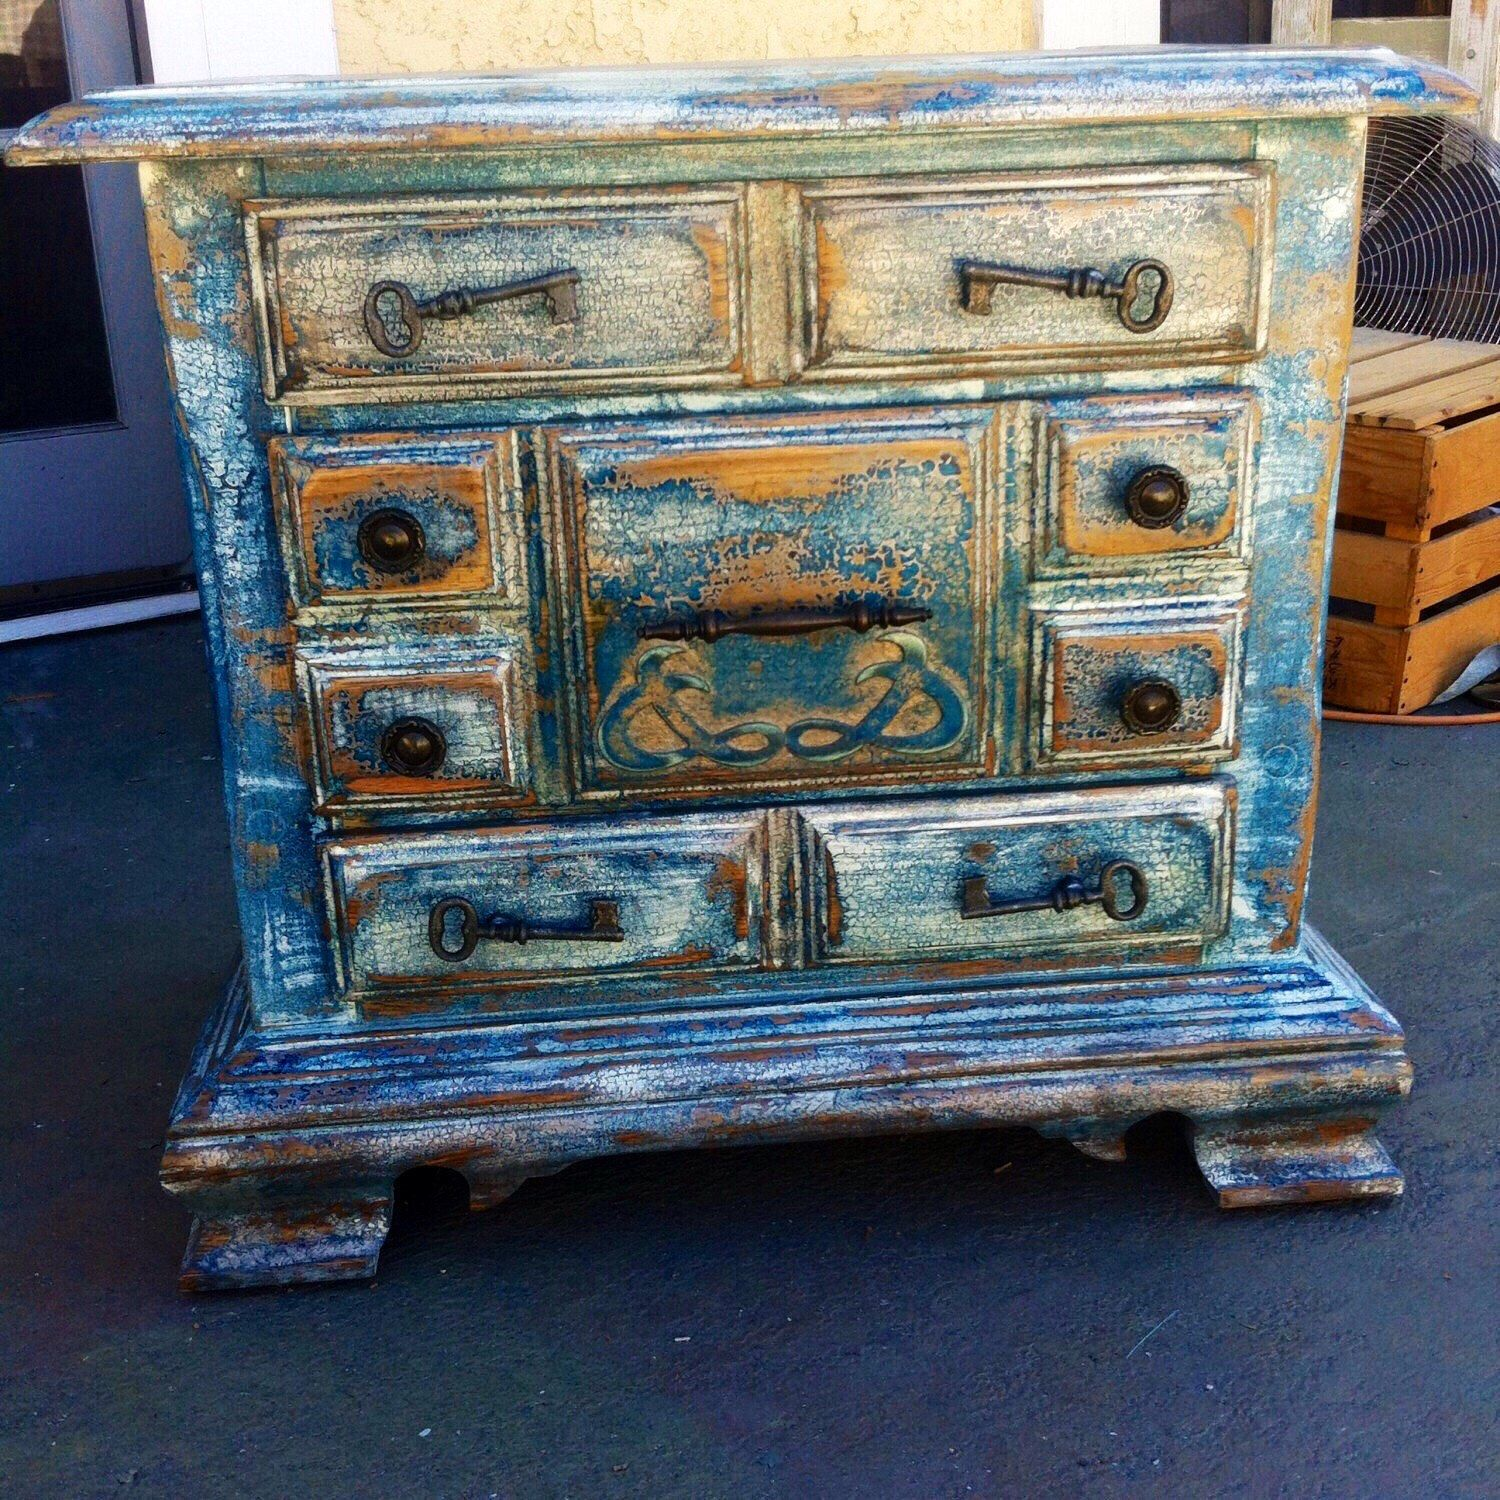 sold shabby chic nightstand country cottage distressed chippy paint blue white w copper. Black Bedroom Furniture Sets. Home Design Ideas